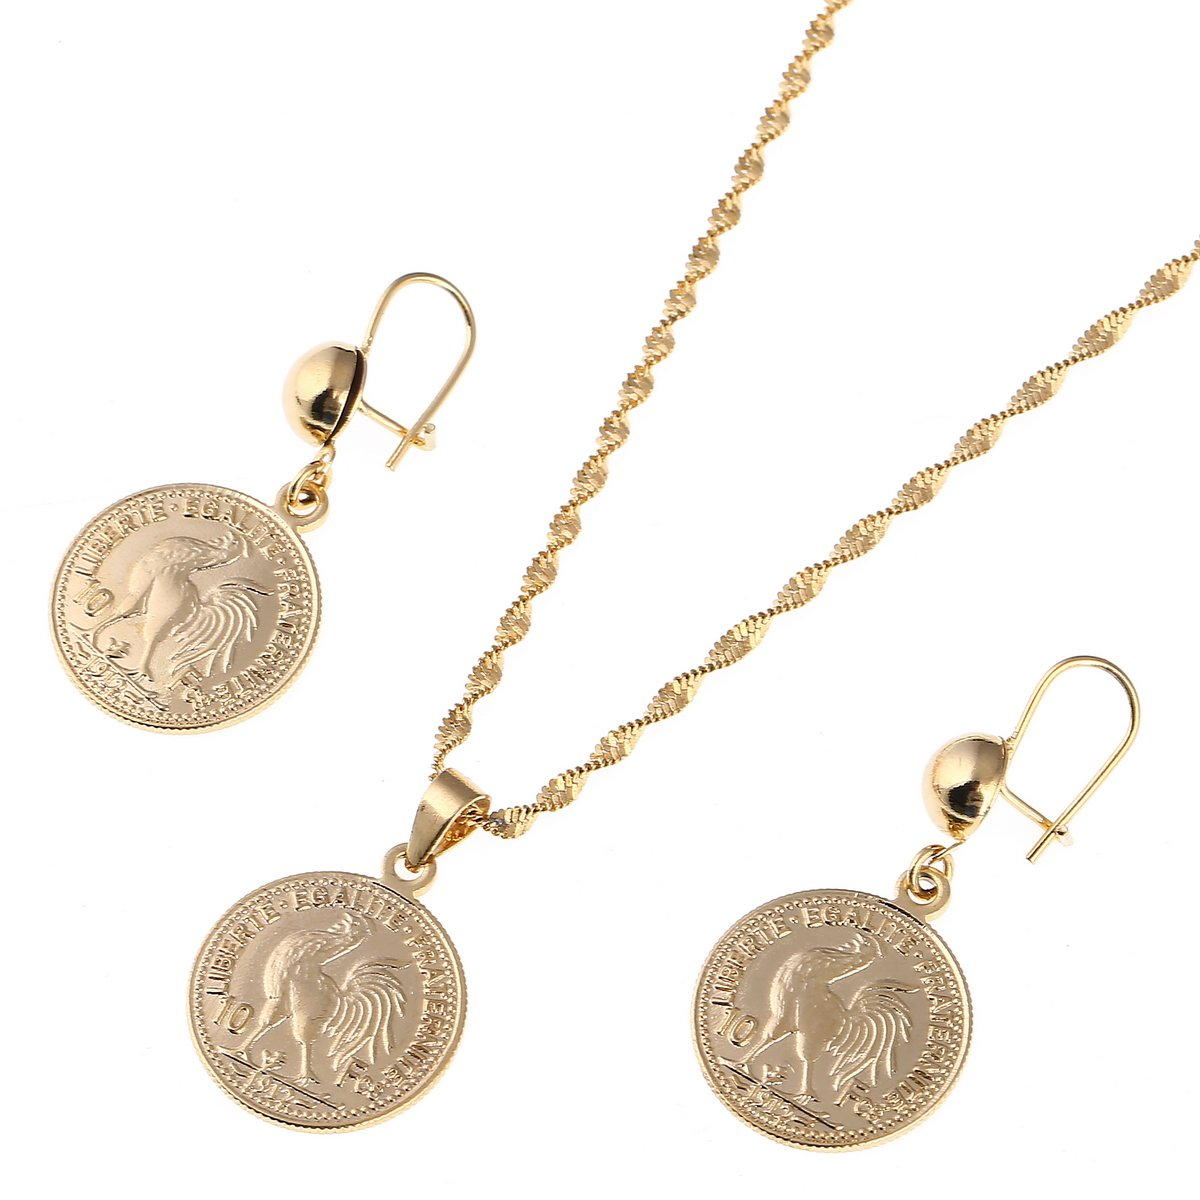 French Coin Pendant Necklaces Earring Set Coq gaulois Jewelry Set Symbol of France Jewelry CB Gold Jewelry G1157